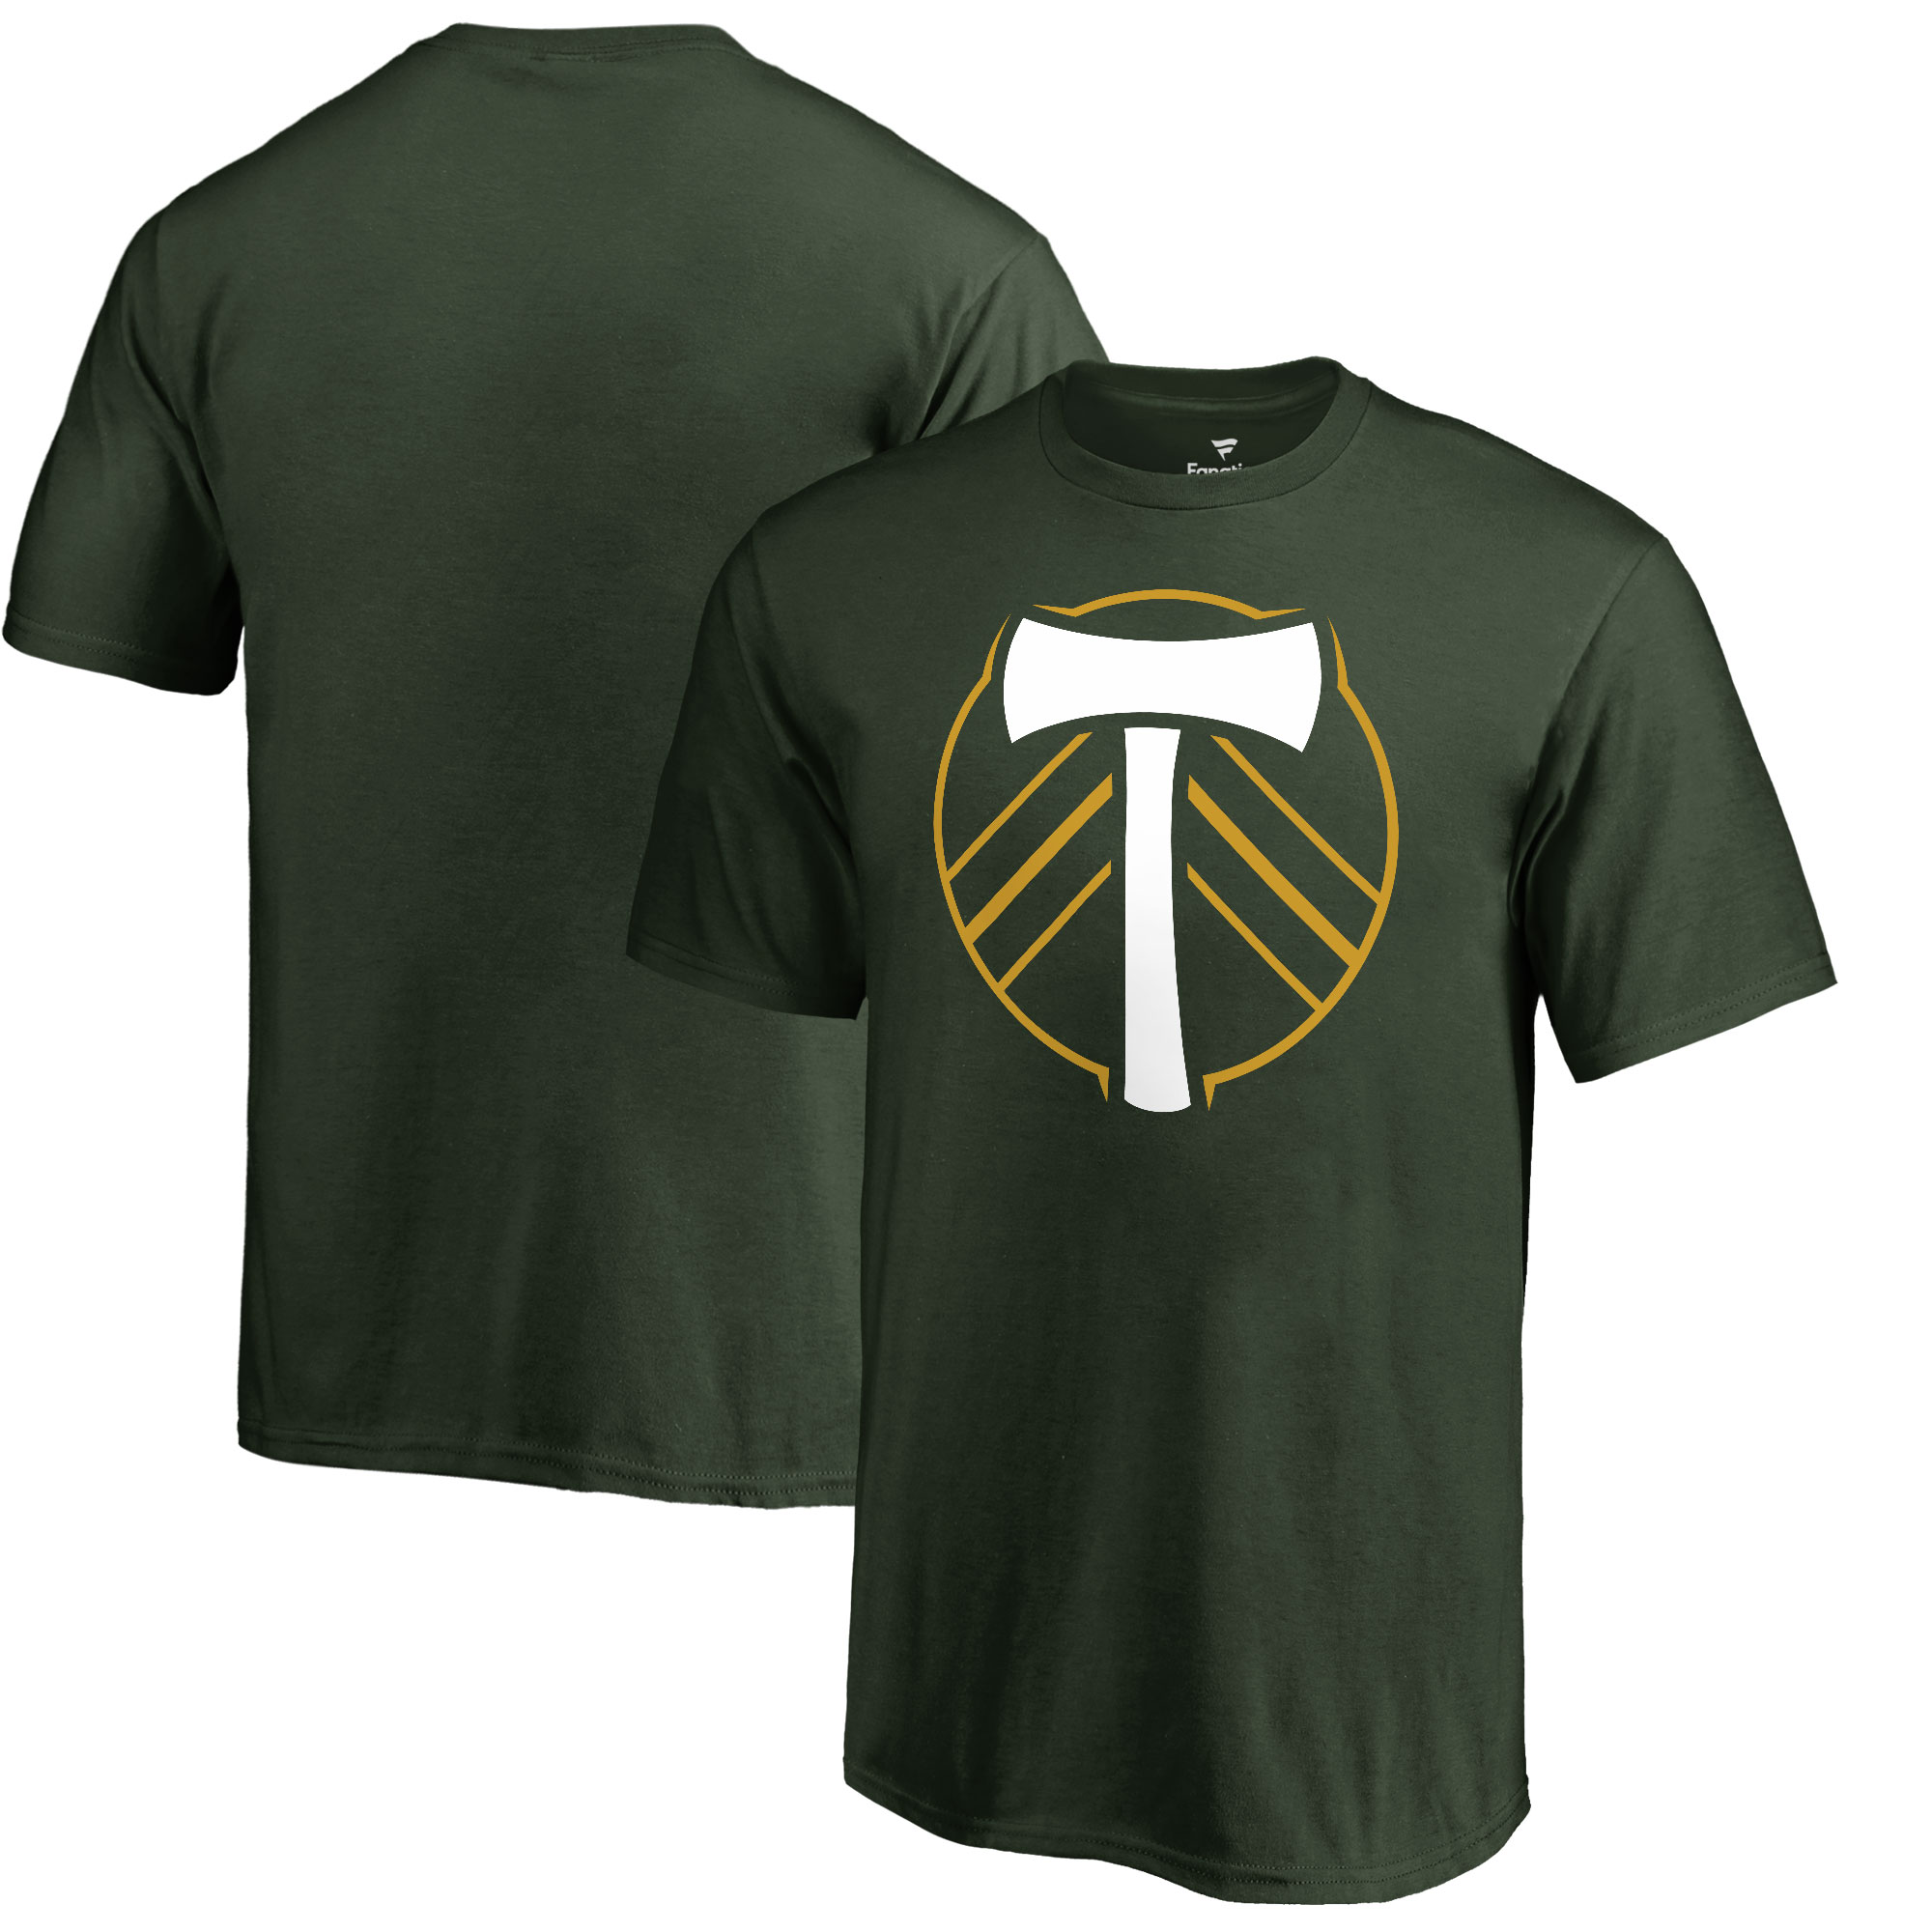 Portland Timbers Fanatics Branded Youth Primary Logo T-Shirt - Green